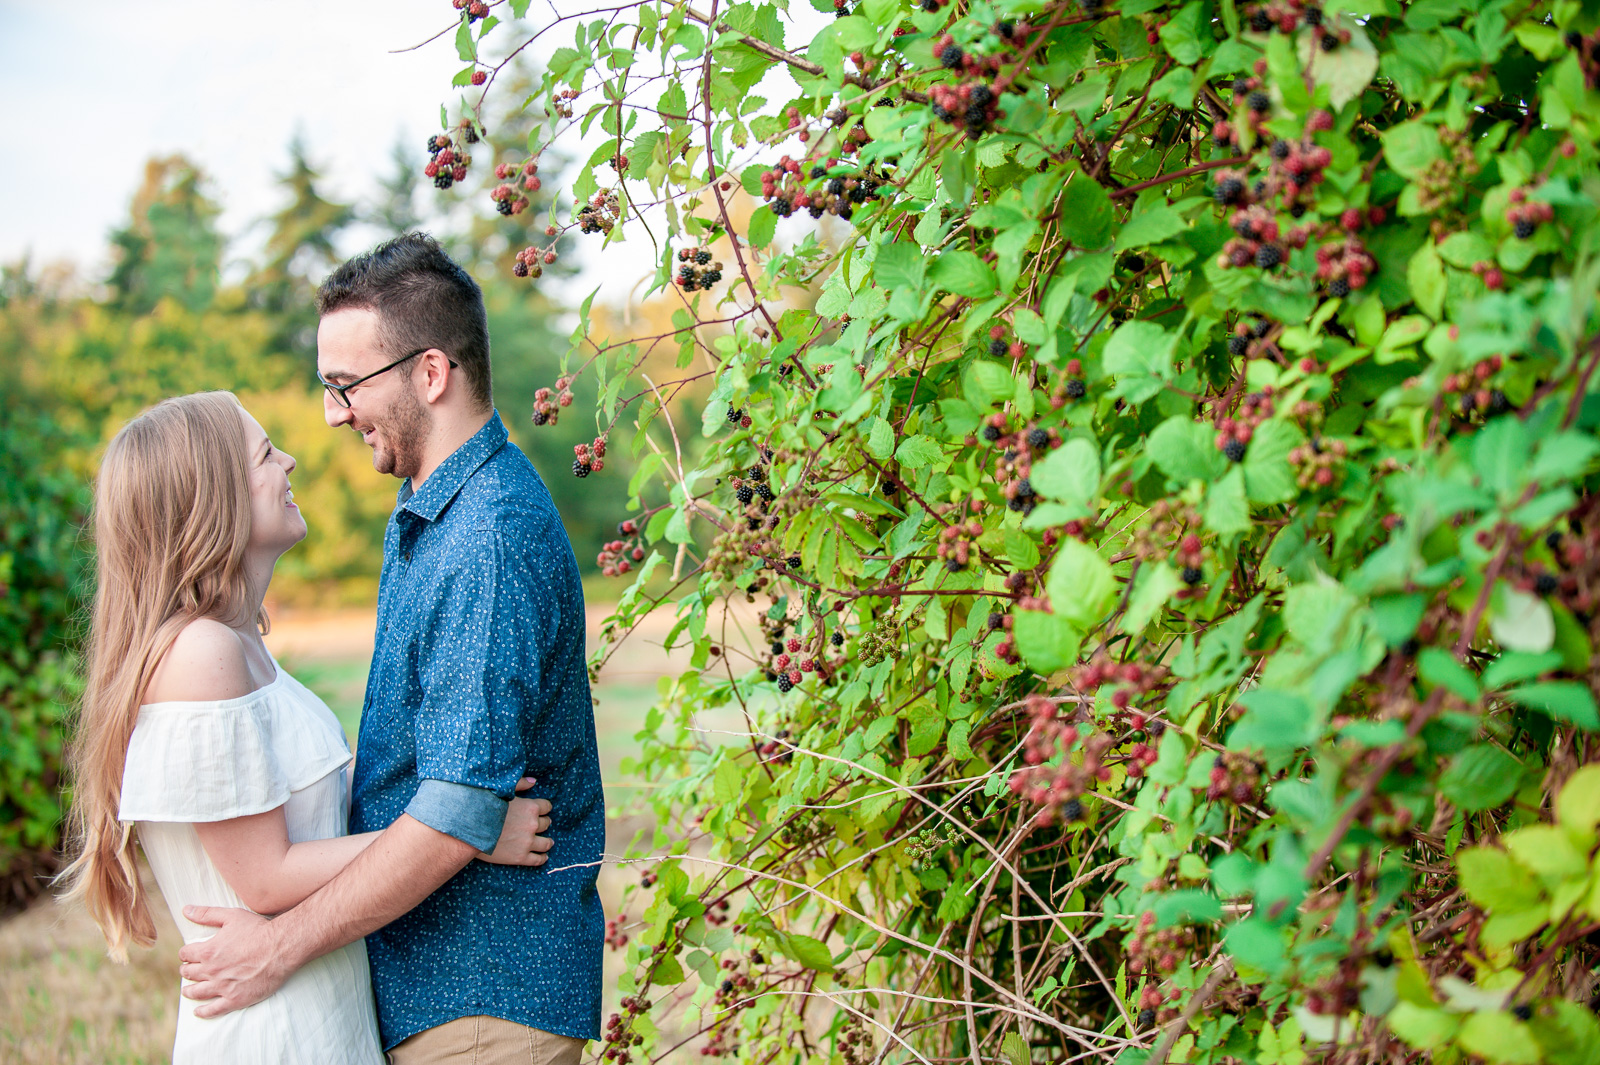 vancouver-island-wedding-photographers-campbell-valley-park-engagement-session-12.jpg